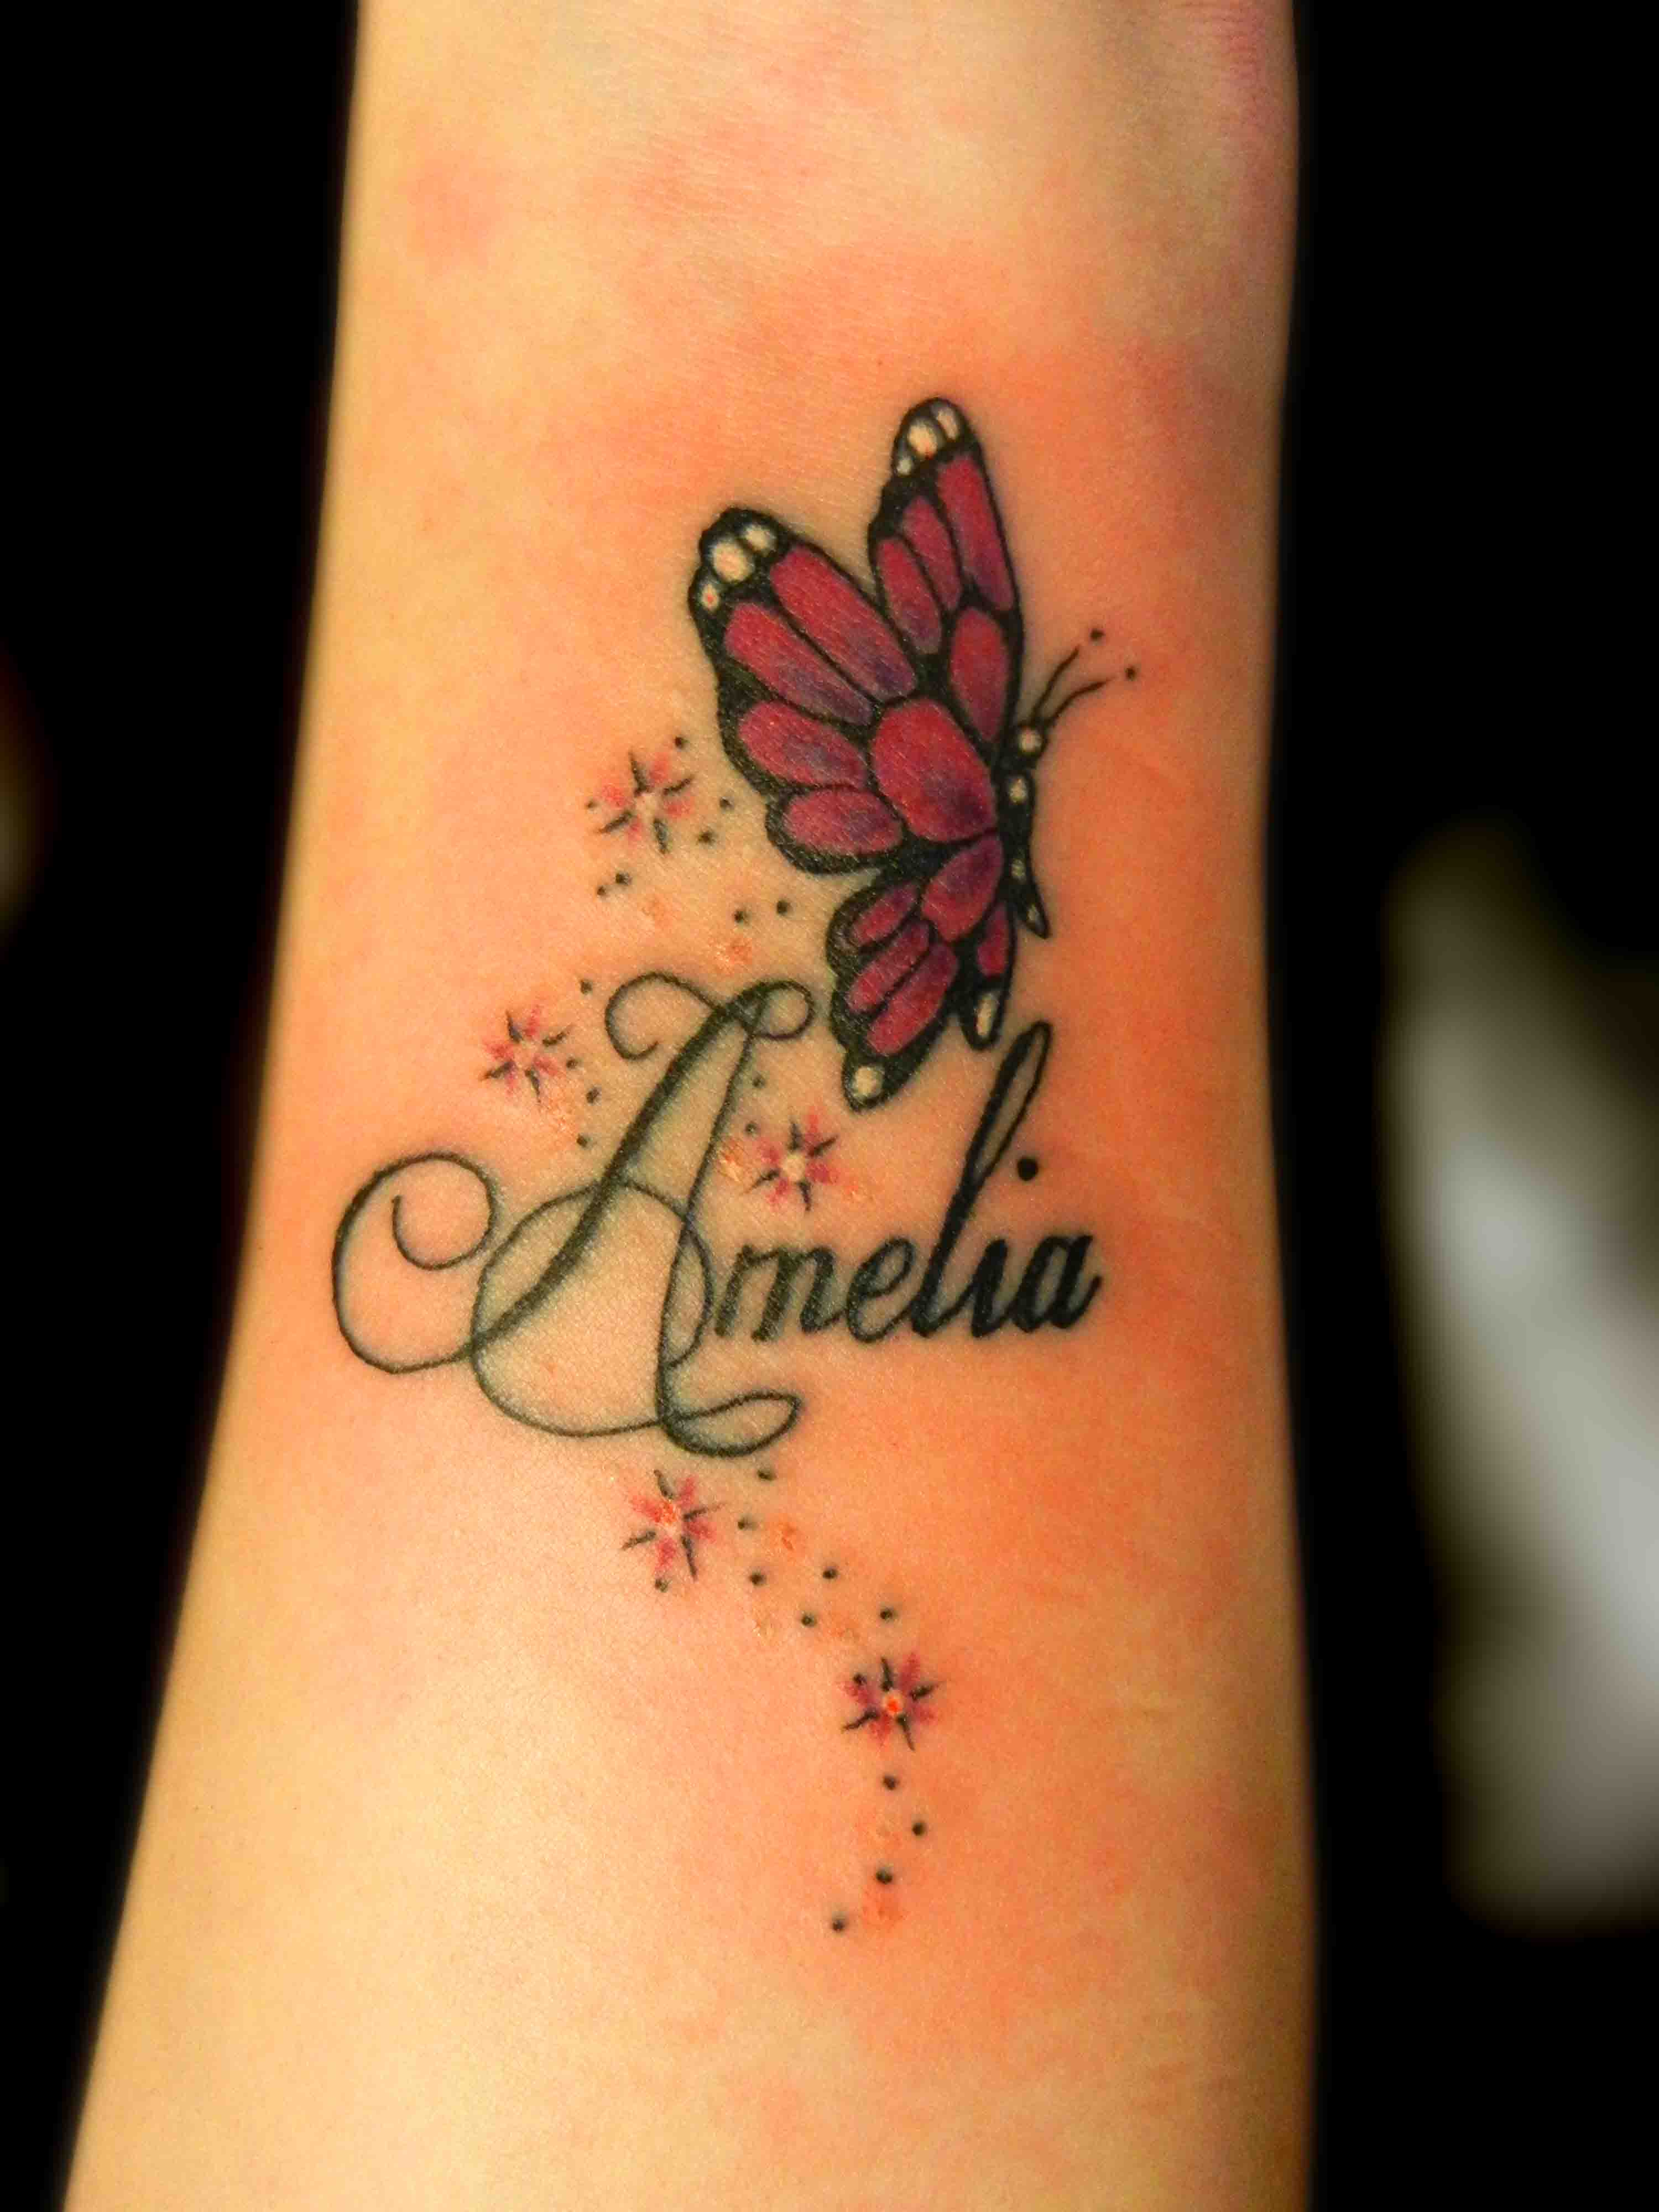 Tattoo ideas for the wrist - Amelia Name And Butterfly Tattoo On Wrist